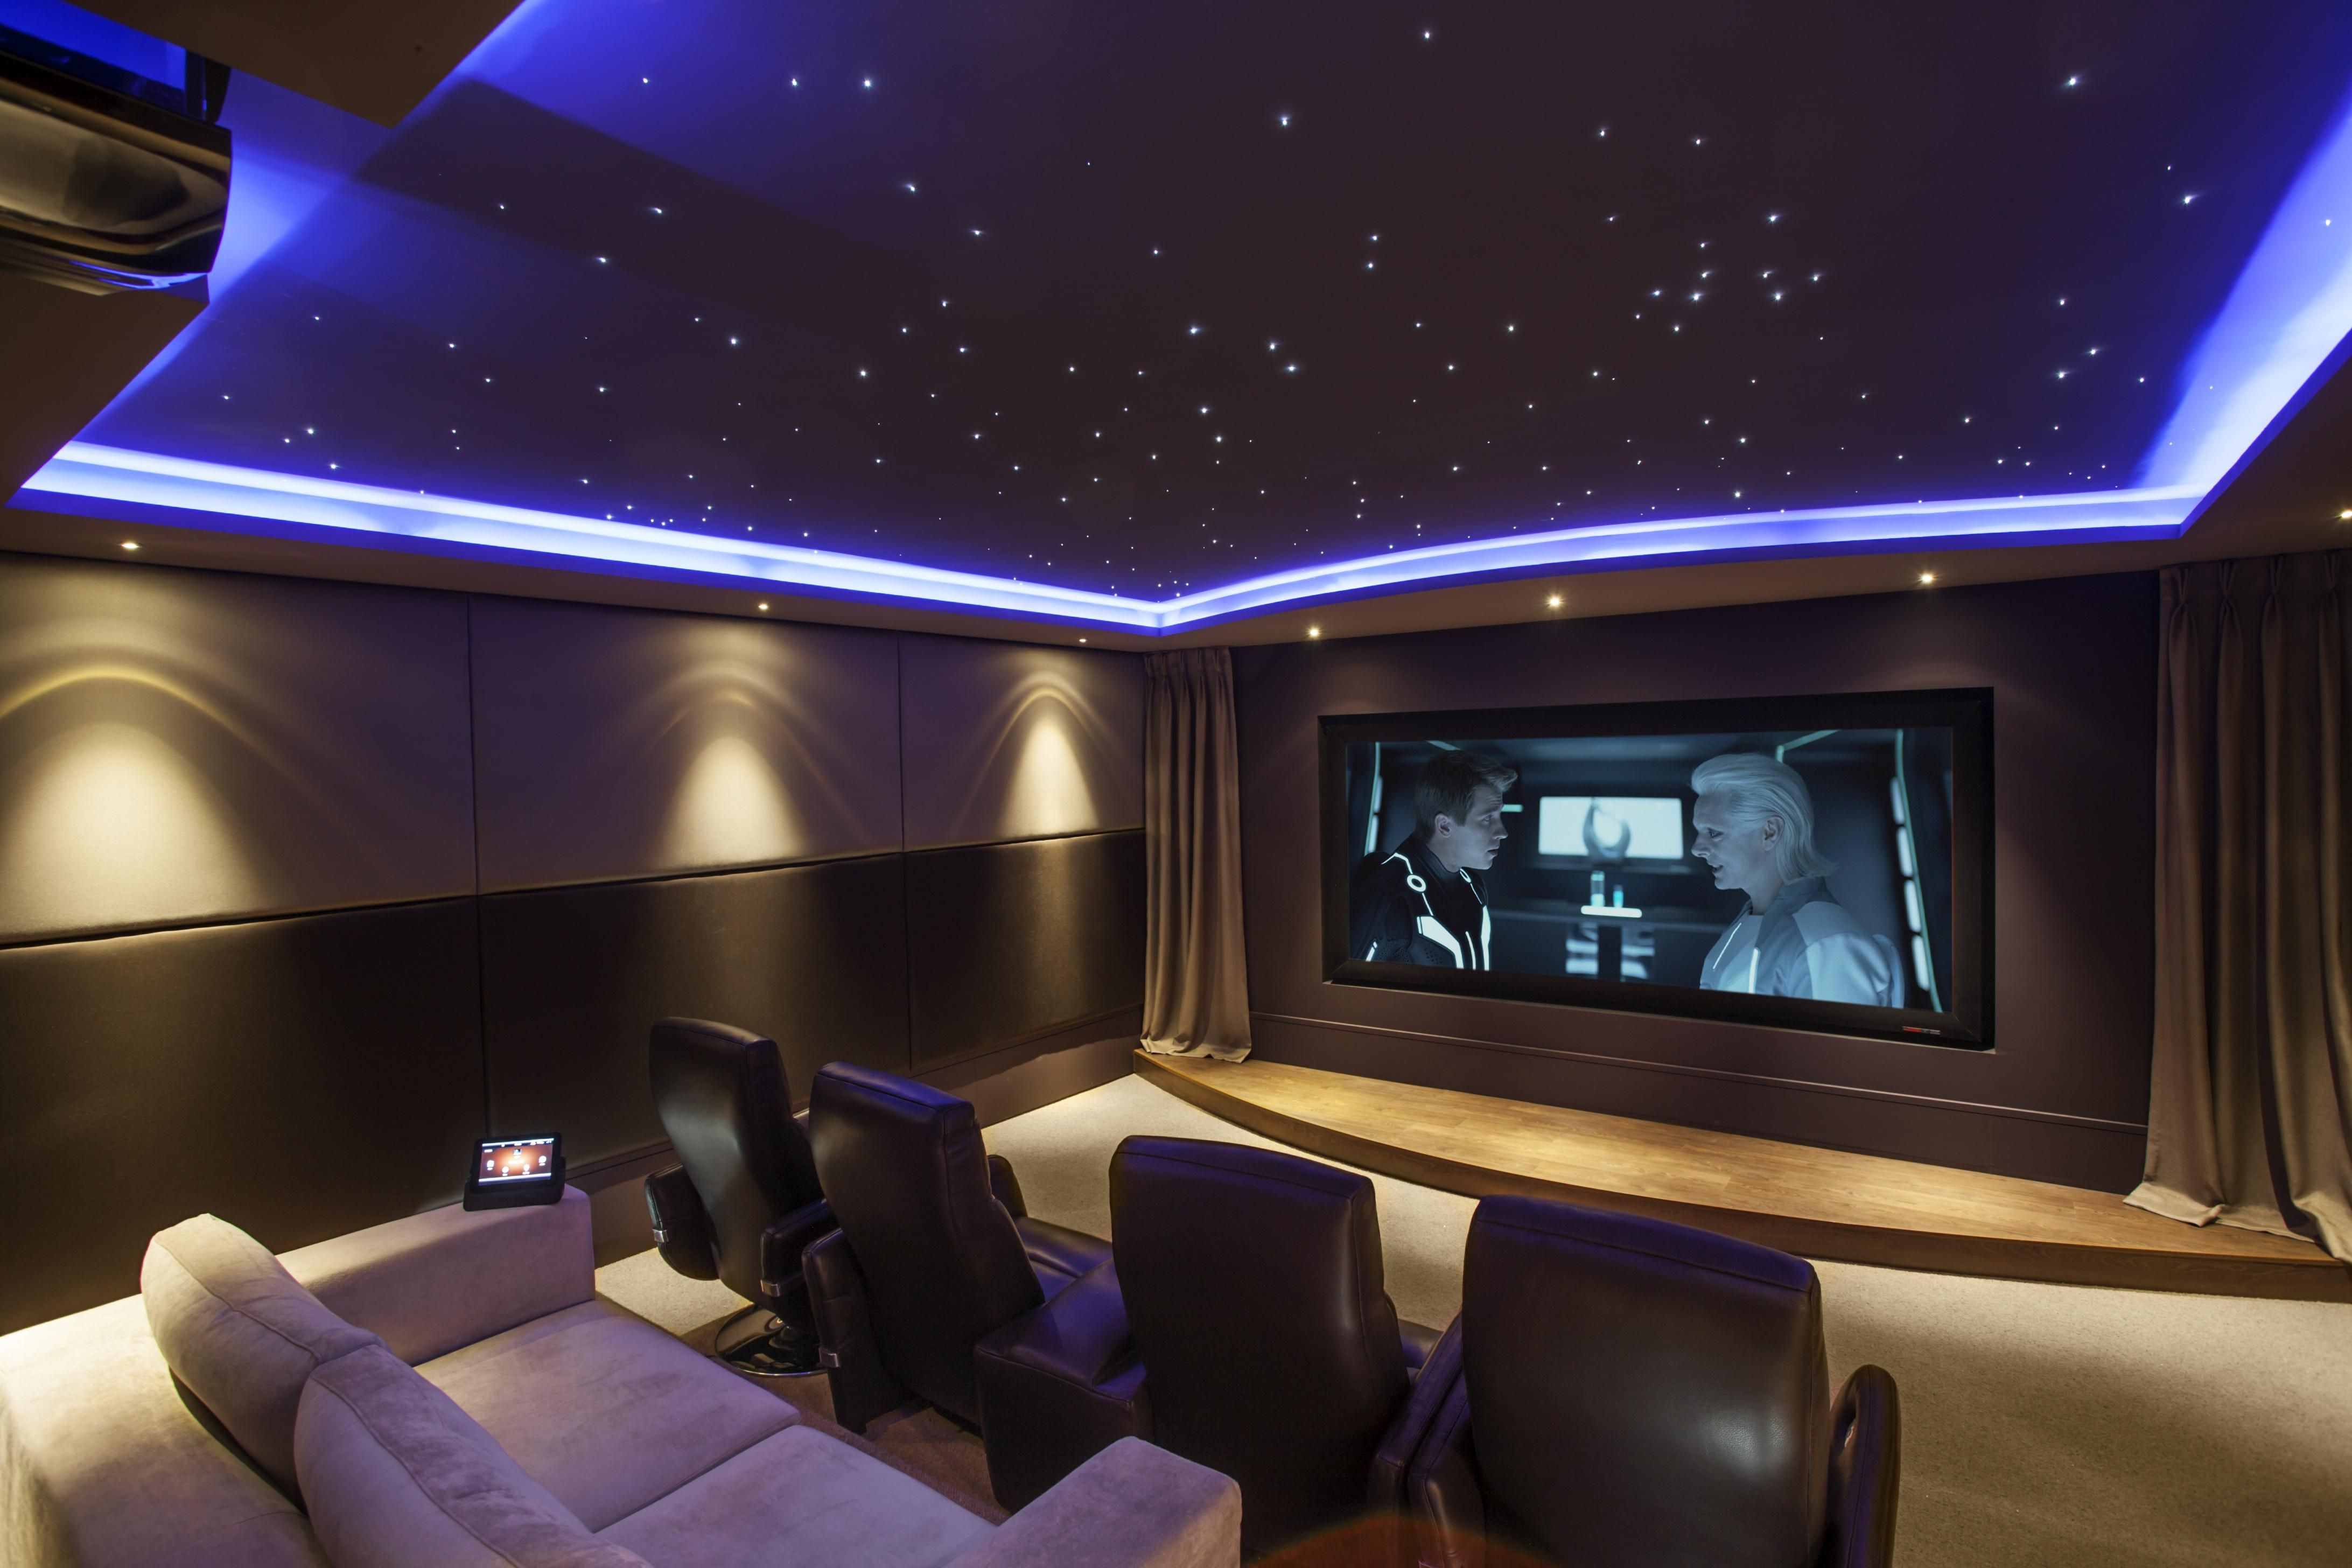 Transform your living room into your own personal movie theater